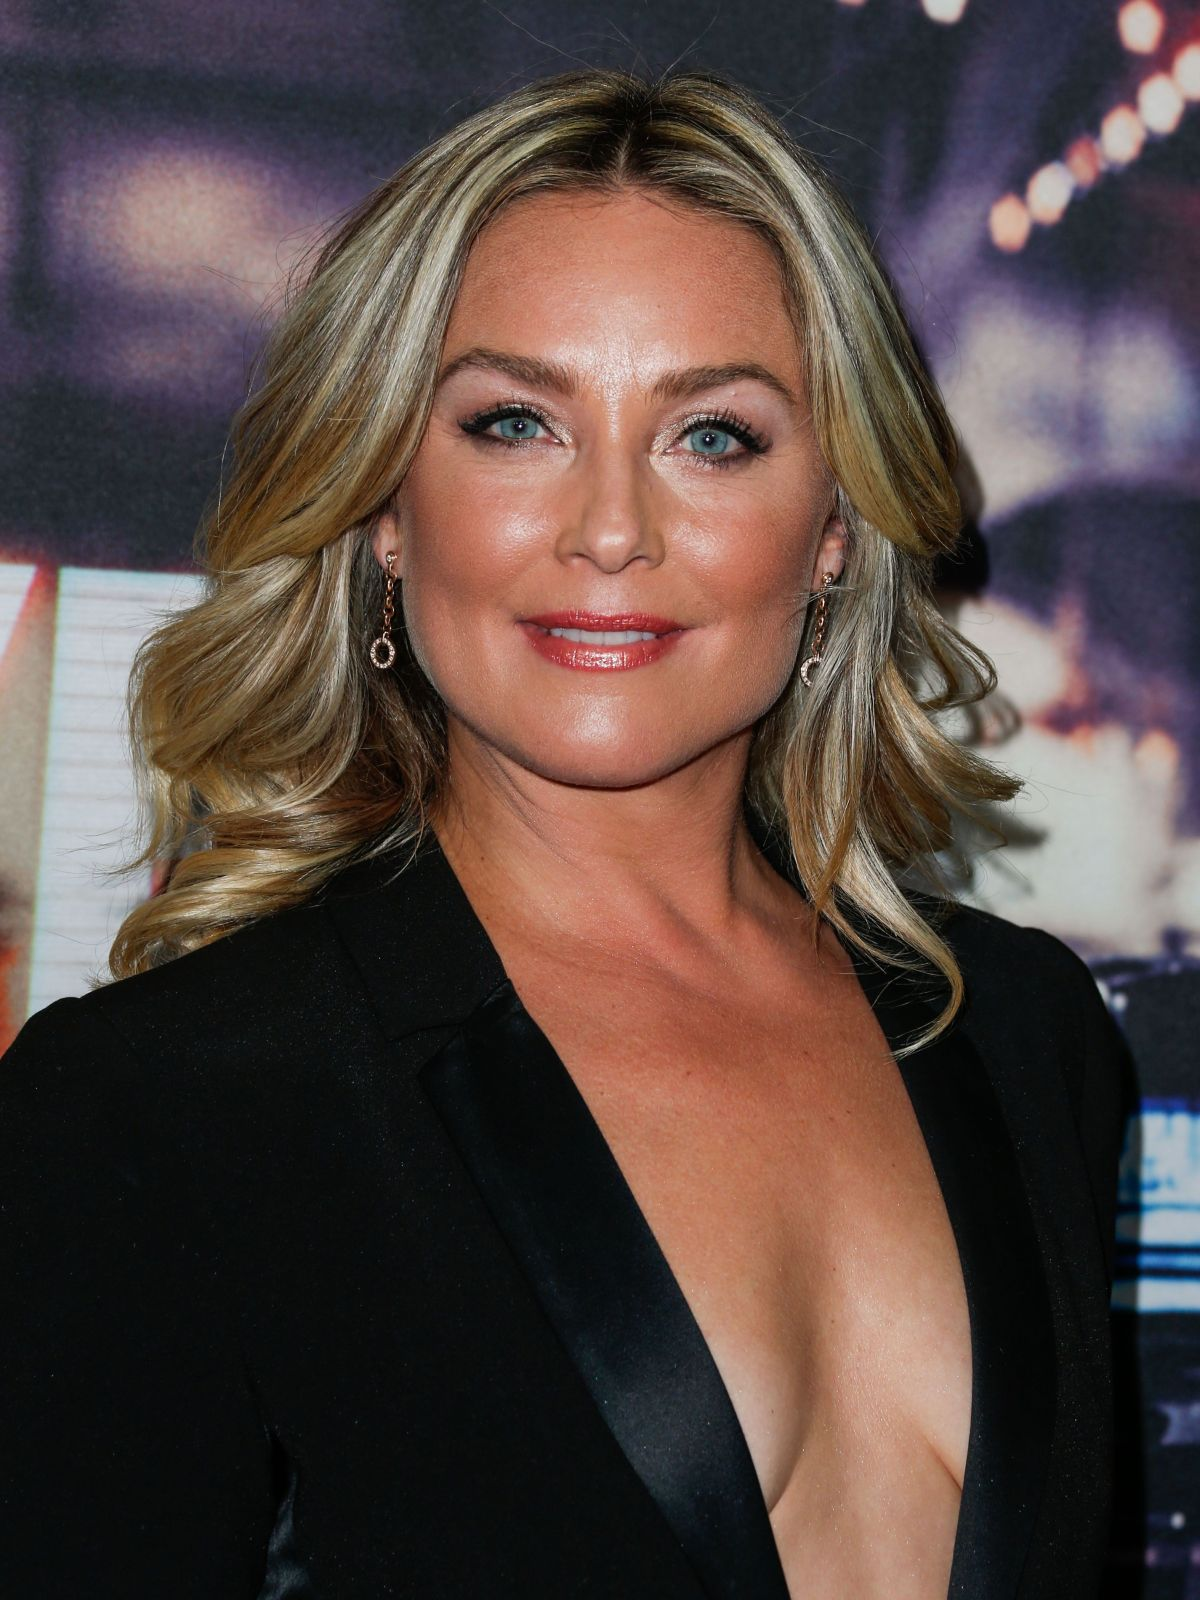 Elisabeth Rohm naked (83 photos), Topless, Cleavage, Instagram, butt 2020